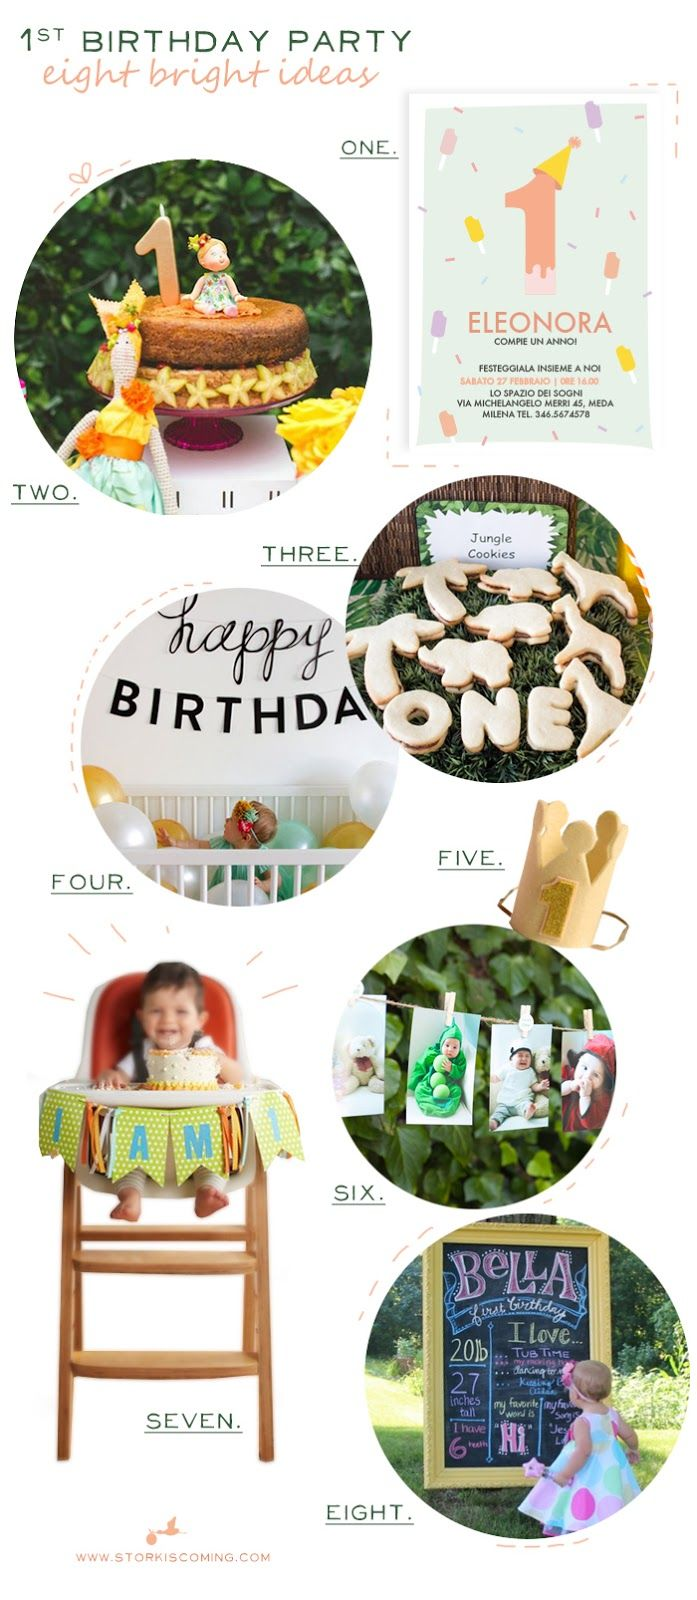 the Stork is Coming: First birthday party: 8 bright idea to try out